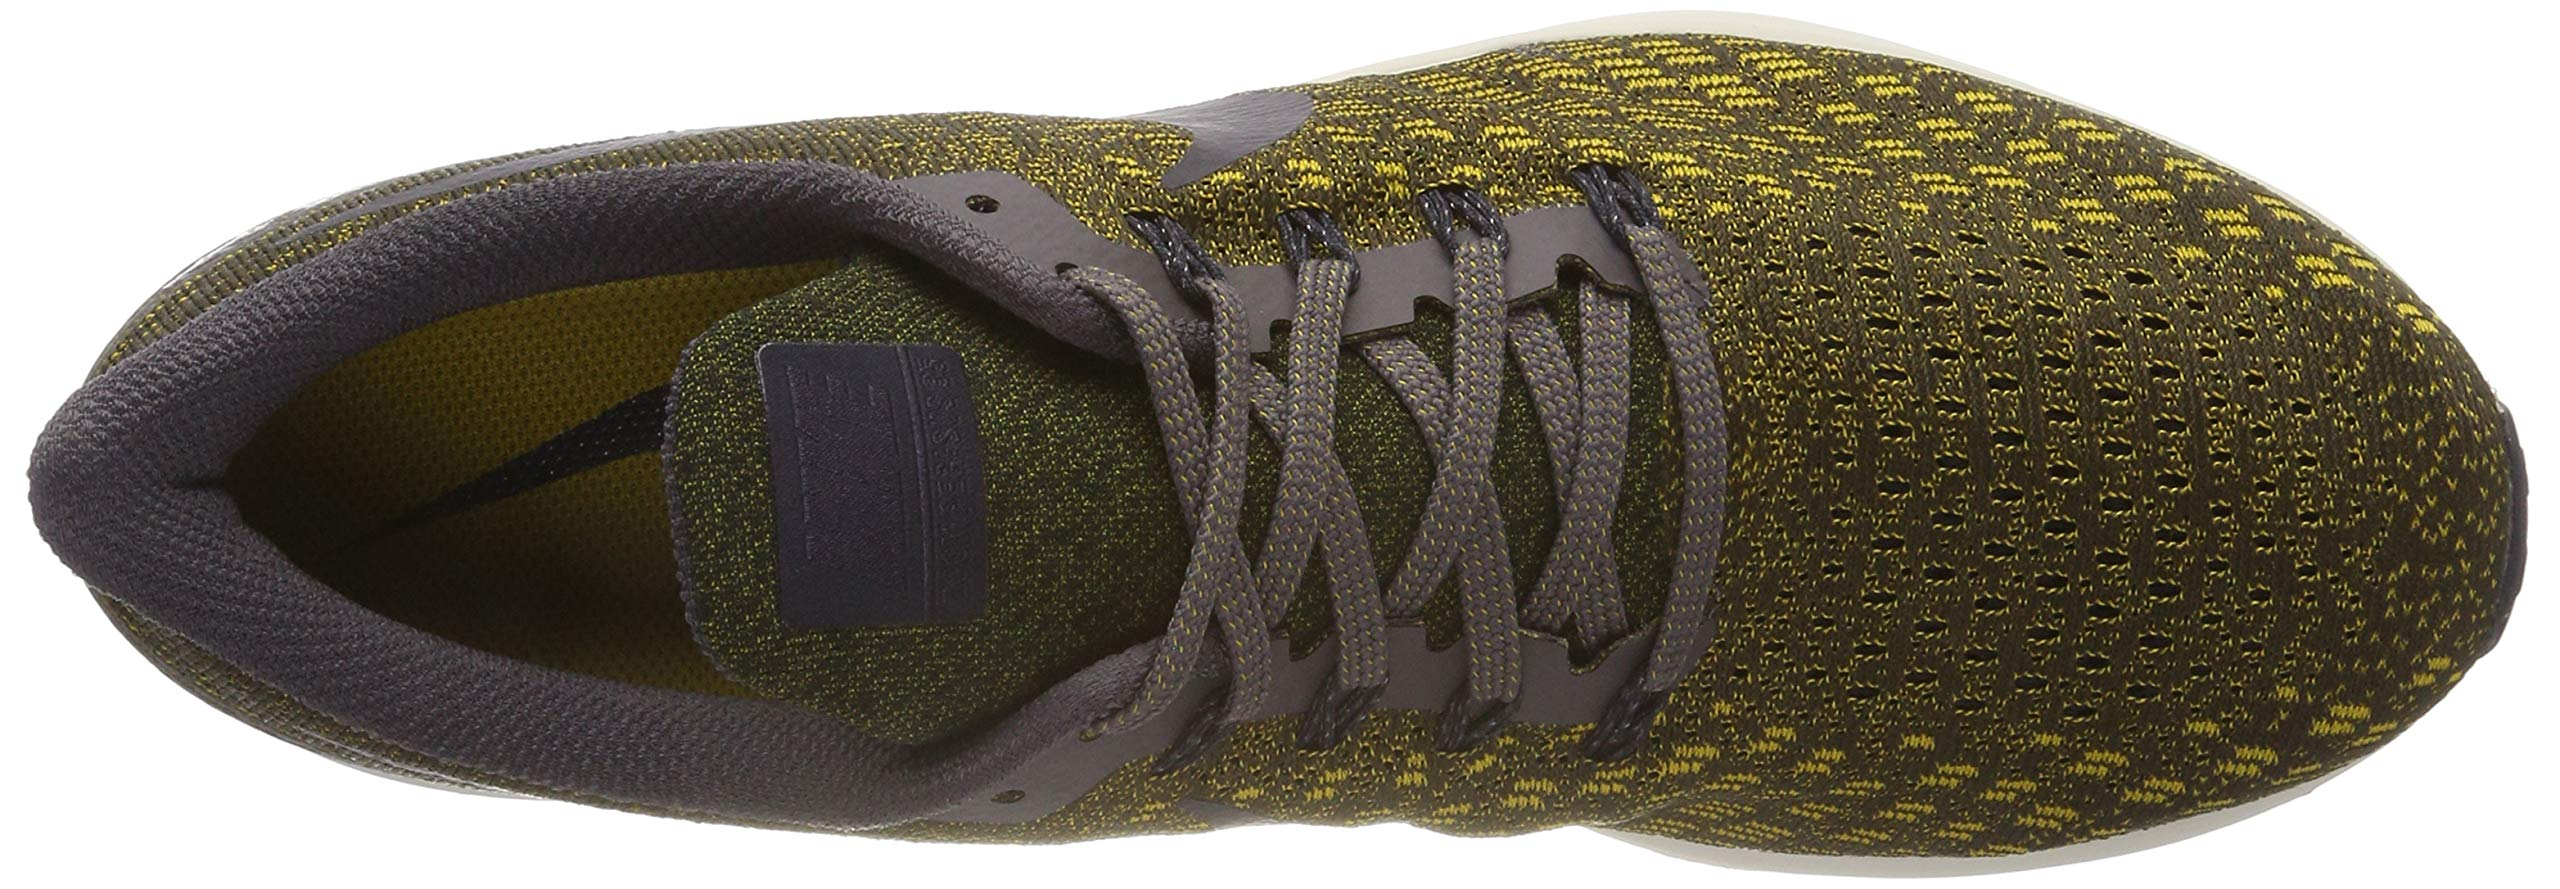 NIKE Men's Air Zoom Pegasus 35 Running Shoes (6, Olive) by Nike (Image #7)